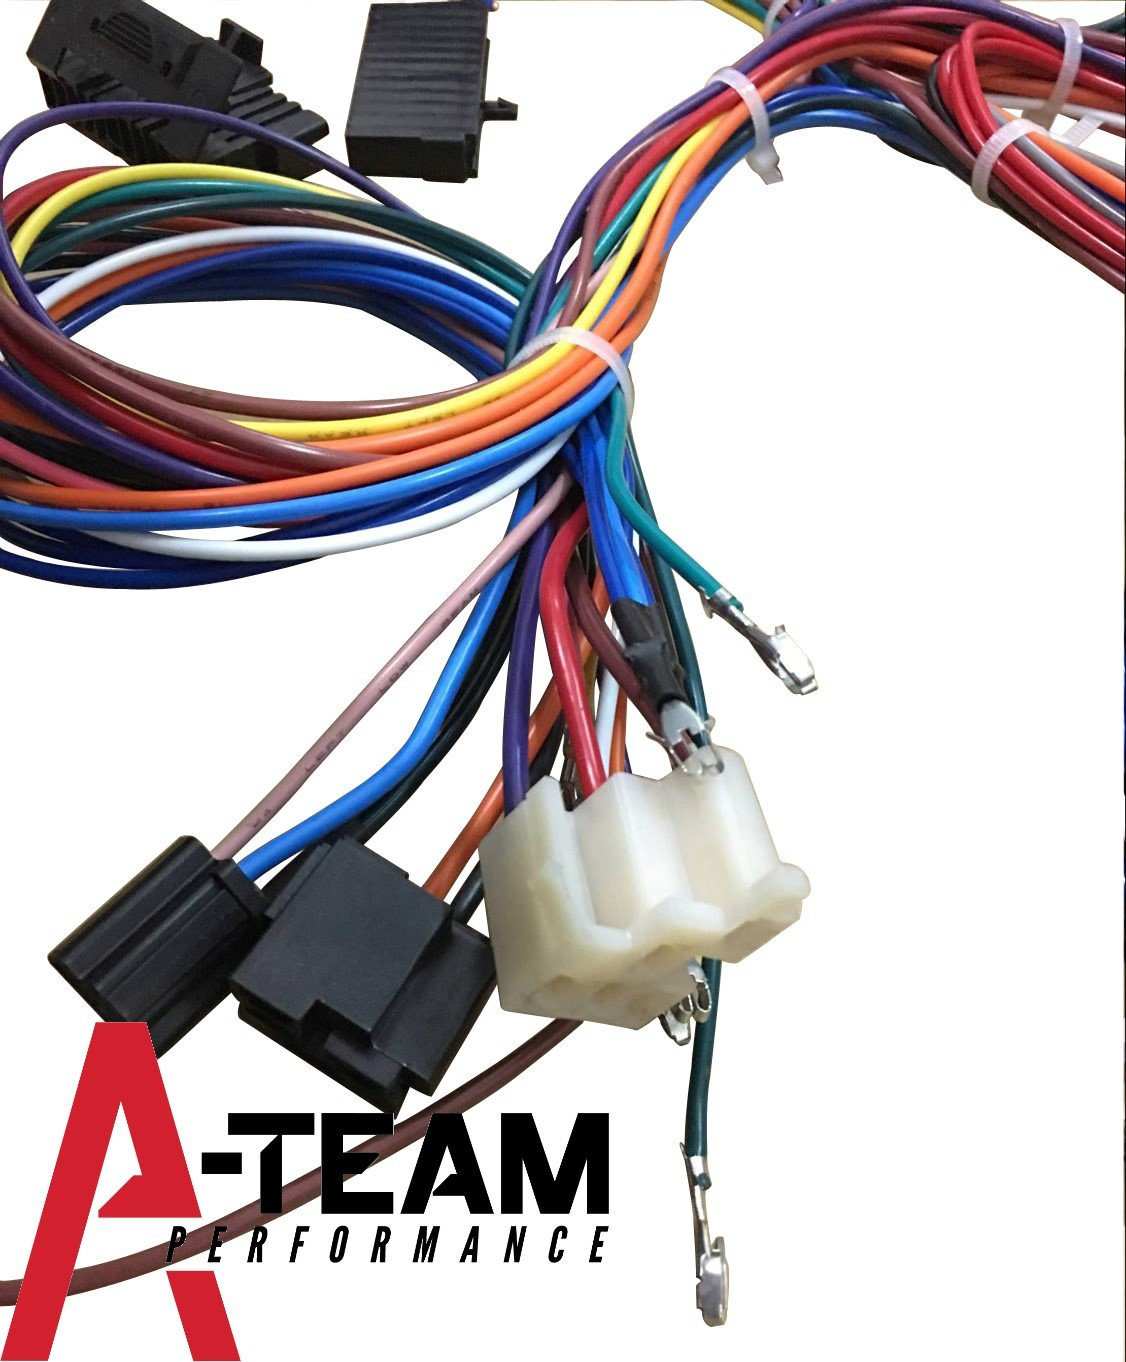 Amazon.com: A-Team Performance 12 STANDARD CIRCUIT UNIVERSAL WIRING HARNESS  KIT MUSCLE CAR HOT ROD STREET ROD NEW XL WIRE: Automotive